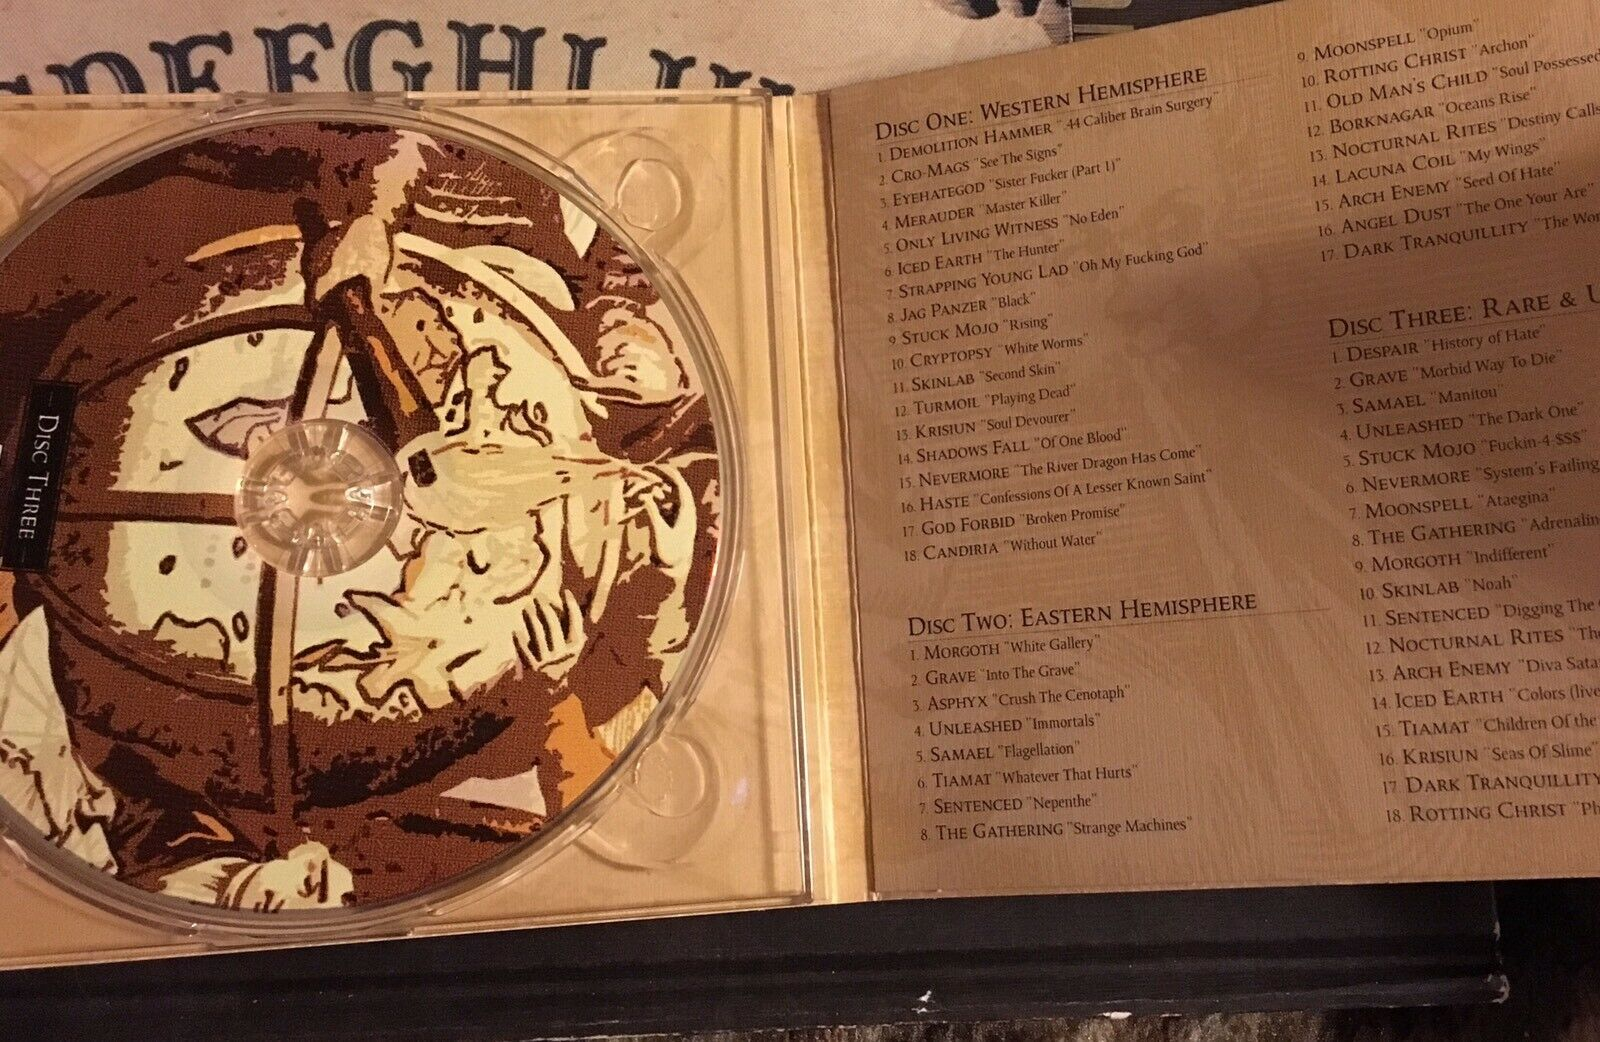 Century Media 10th Anniversary Box Set Collection [Box] [PA] by Various  Artists (CD, Oct-2001, 3 Discs, Century Media (USA))